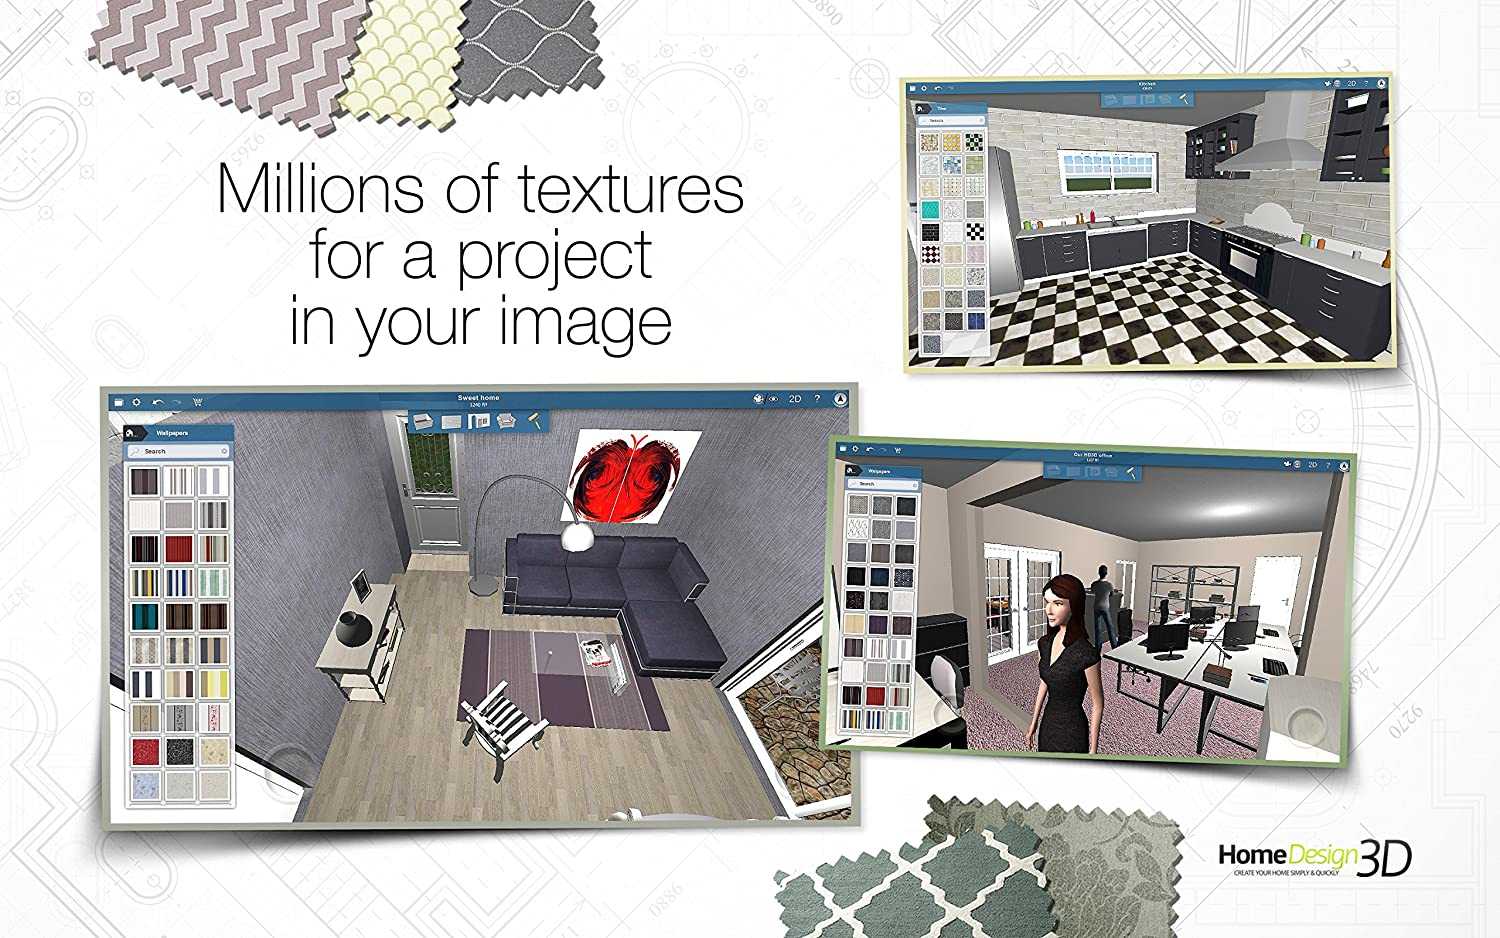 amazon com home design 3d download software